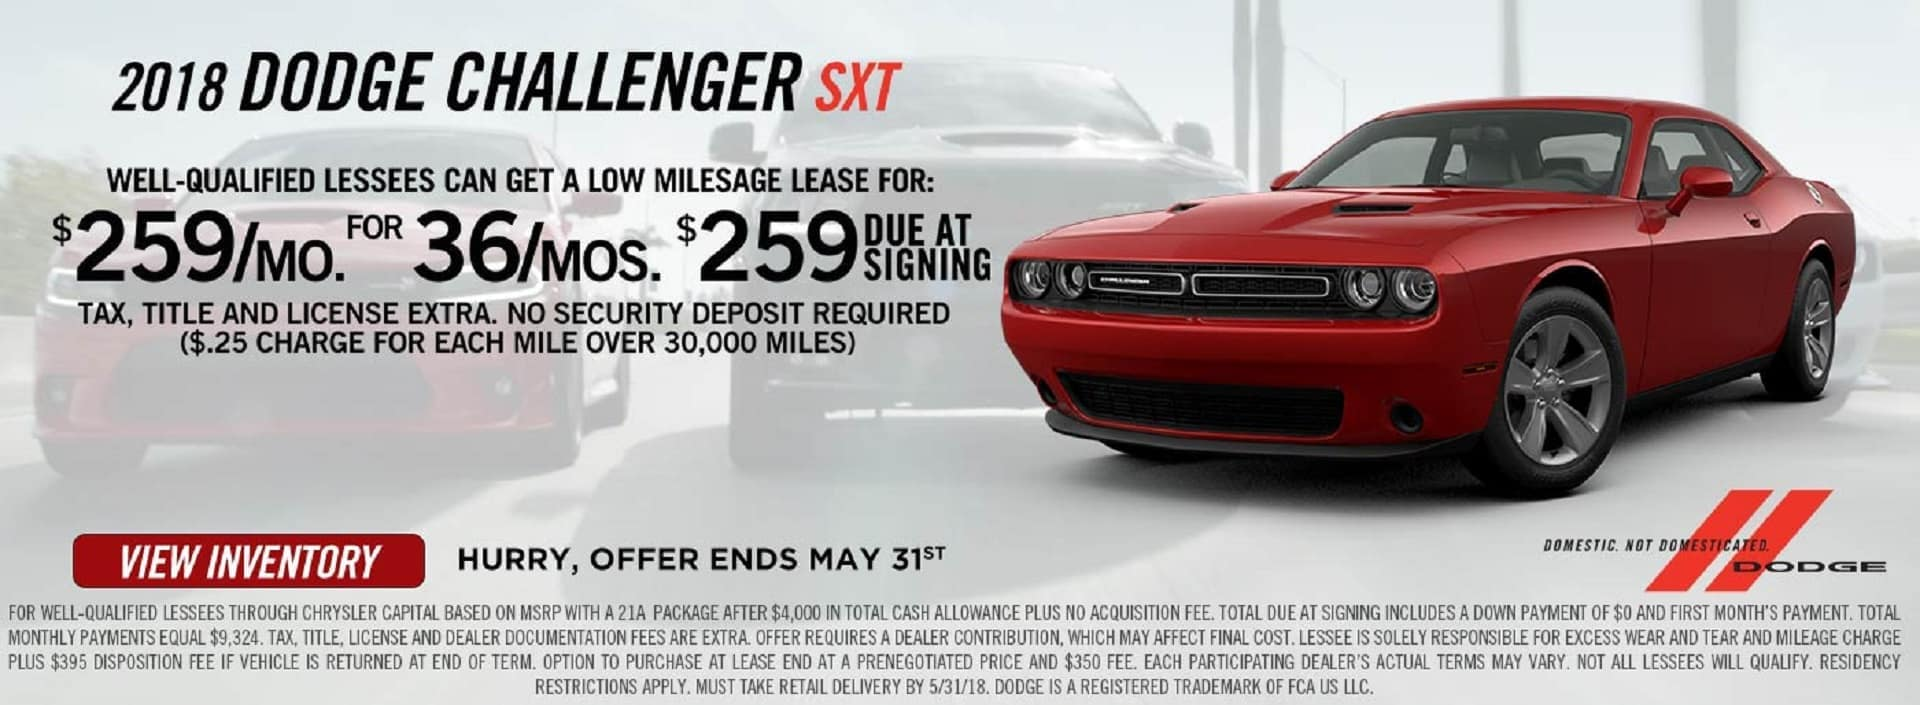 2018 Challenger Lease